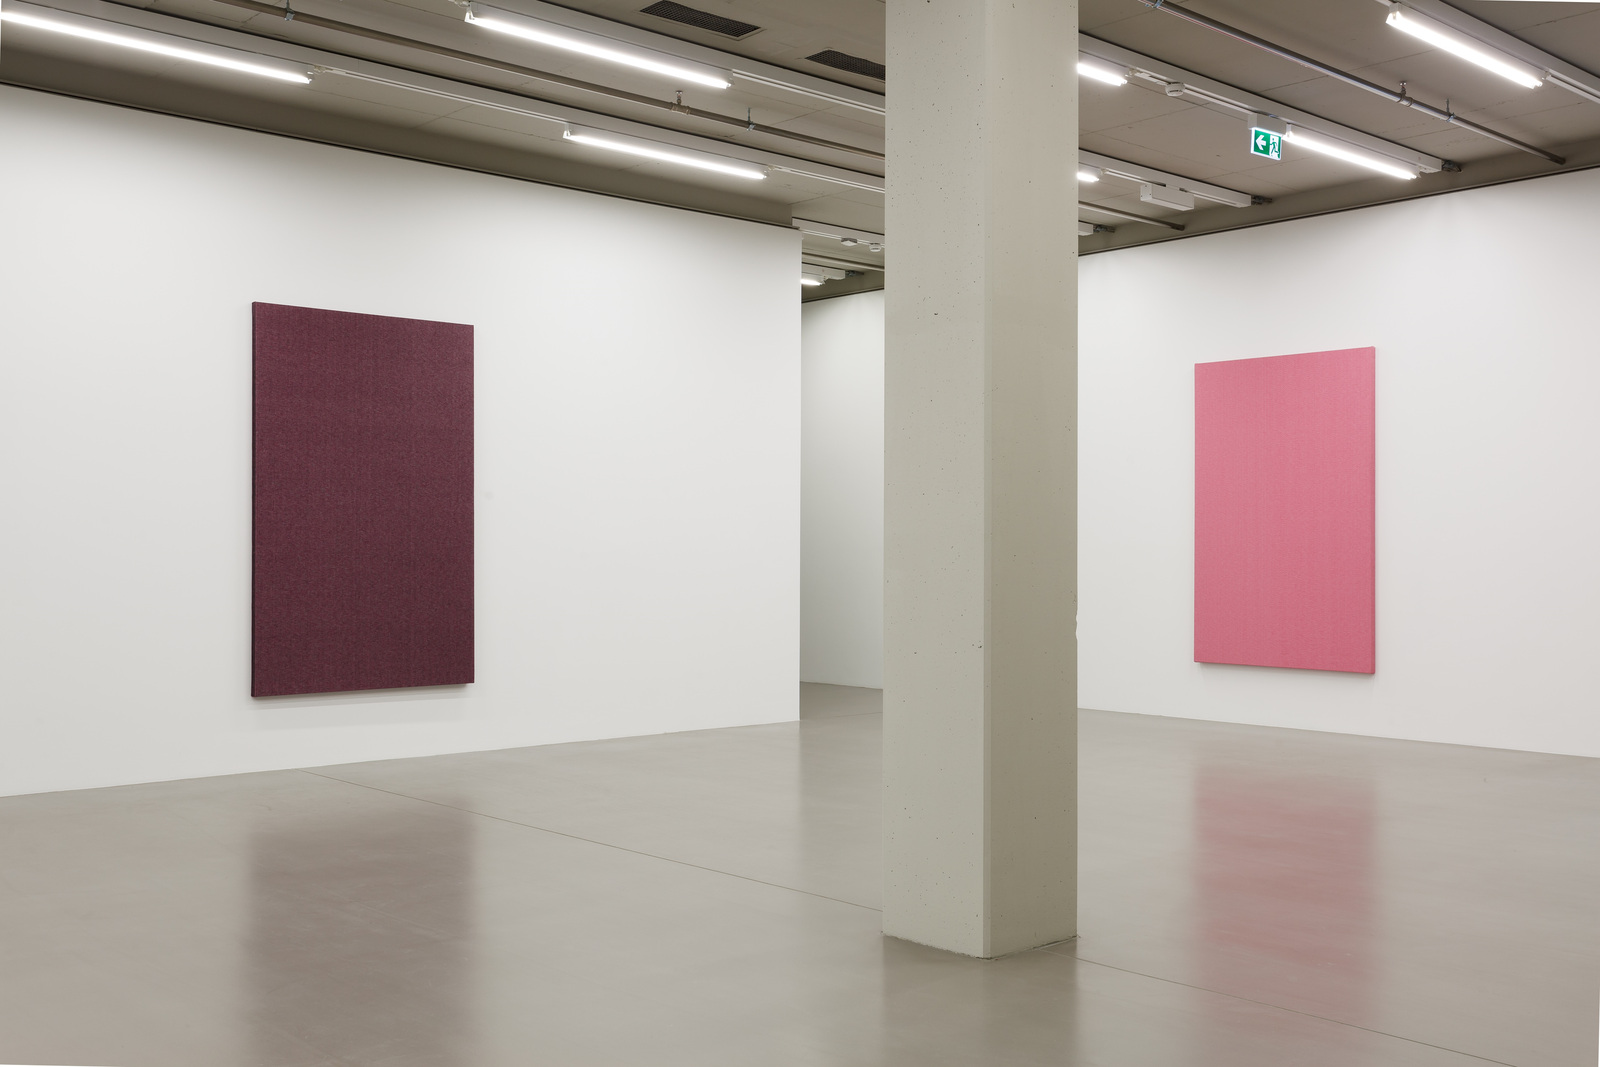 Willem_de_Rooij_Zen_Chyme_in_her_Jeans_2011_Untitled_for_now_Pink_2012